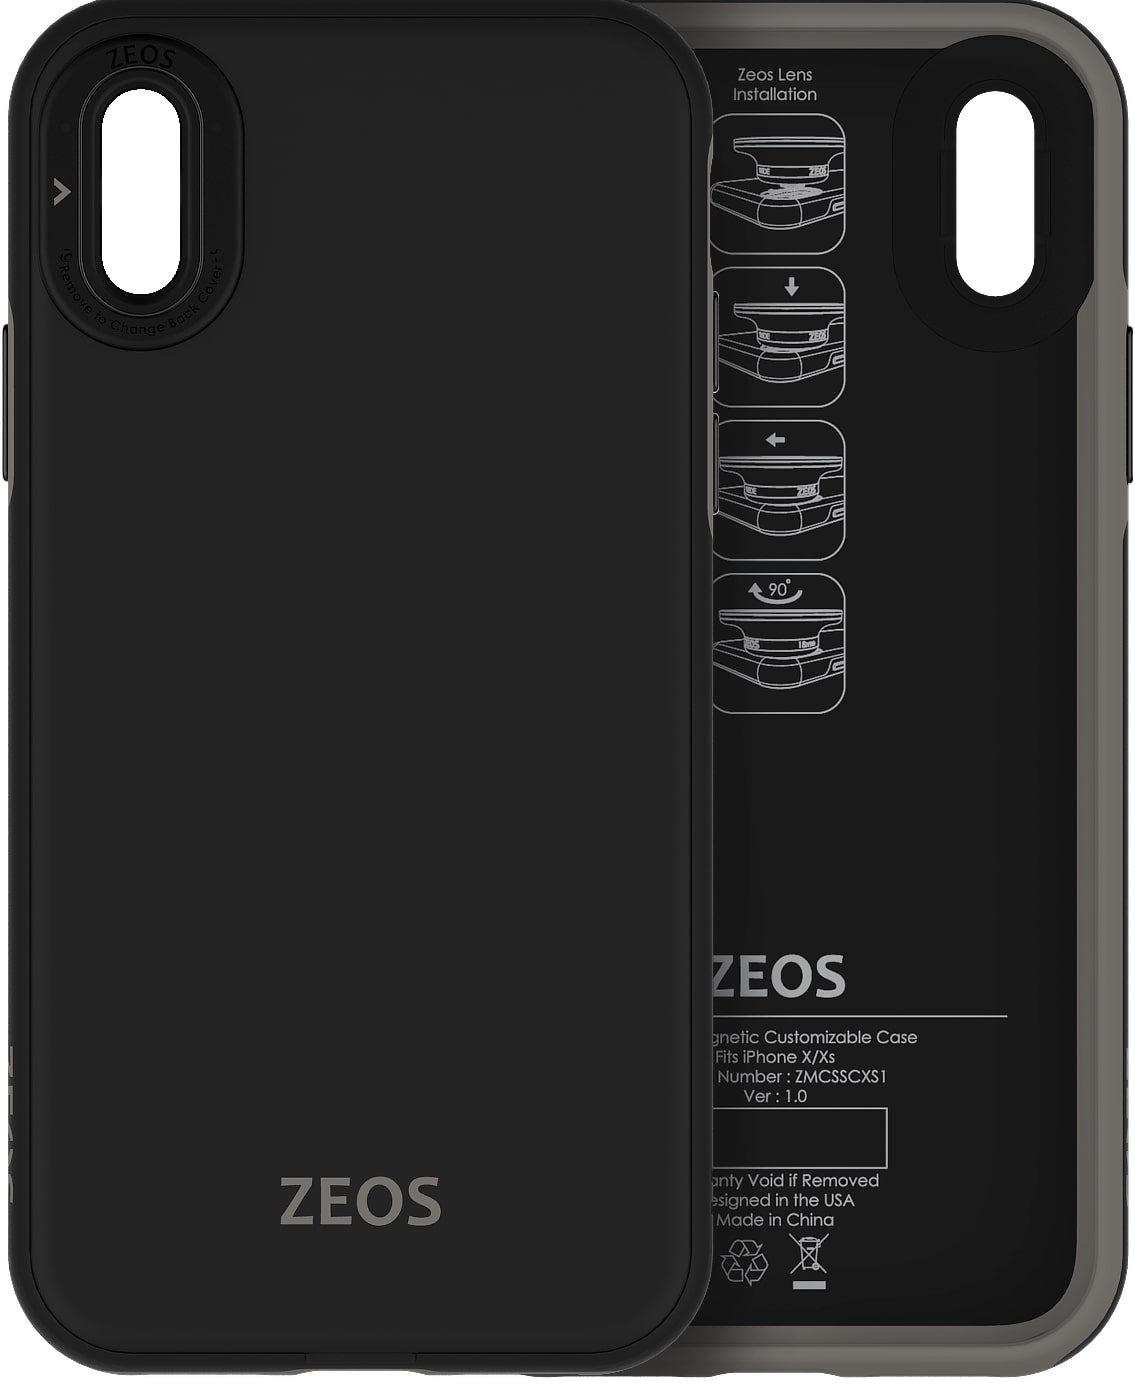 ZEOS 3 in 1 Battery Case for iPhone SE